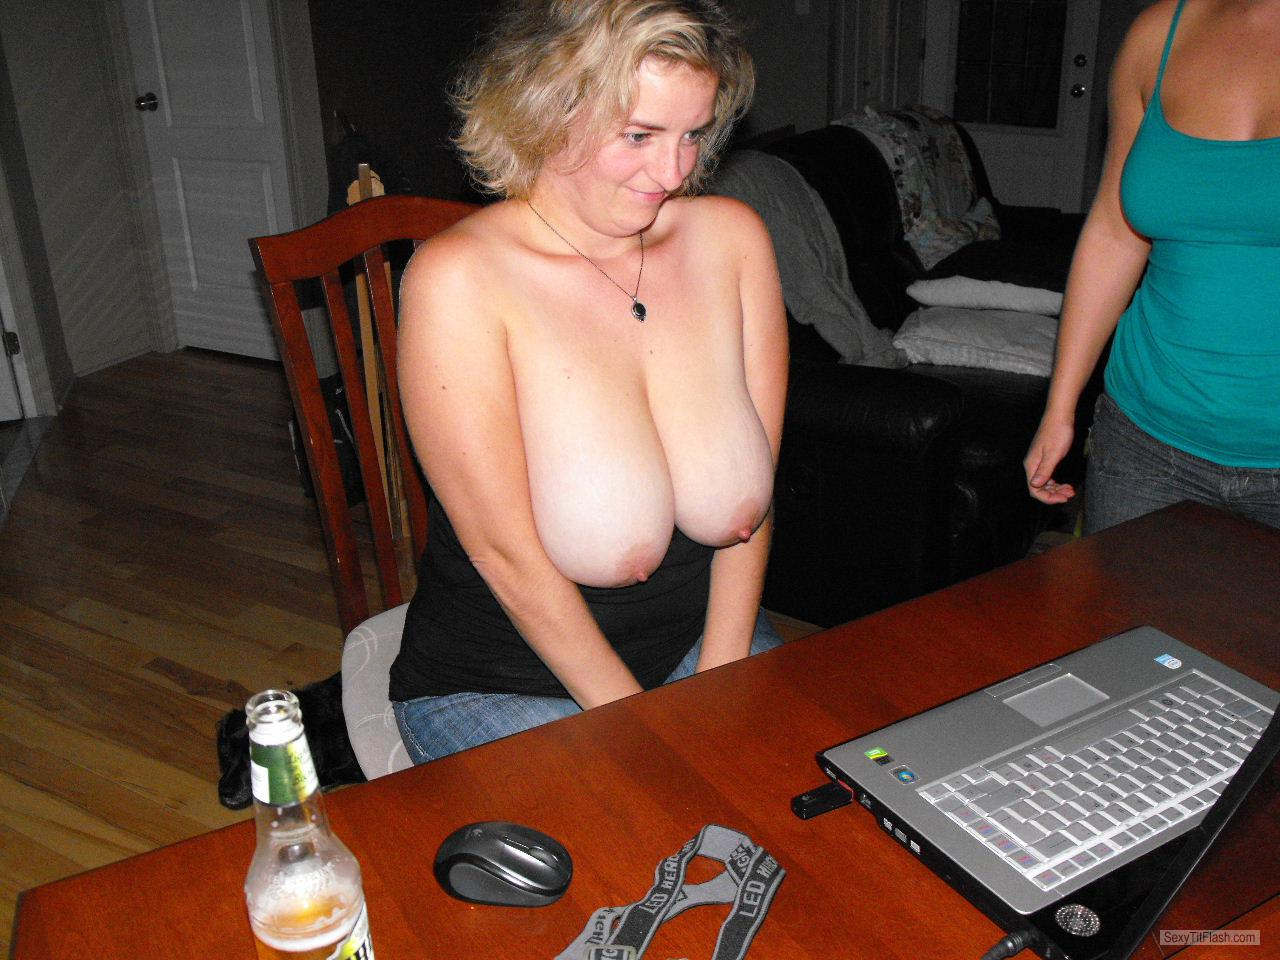 Tit Flash: My Big Tits - Topless Stef from United States